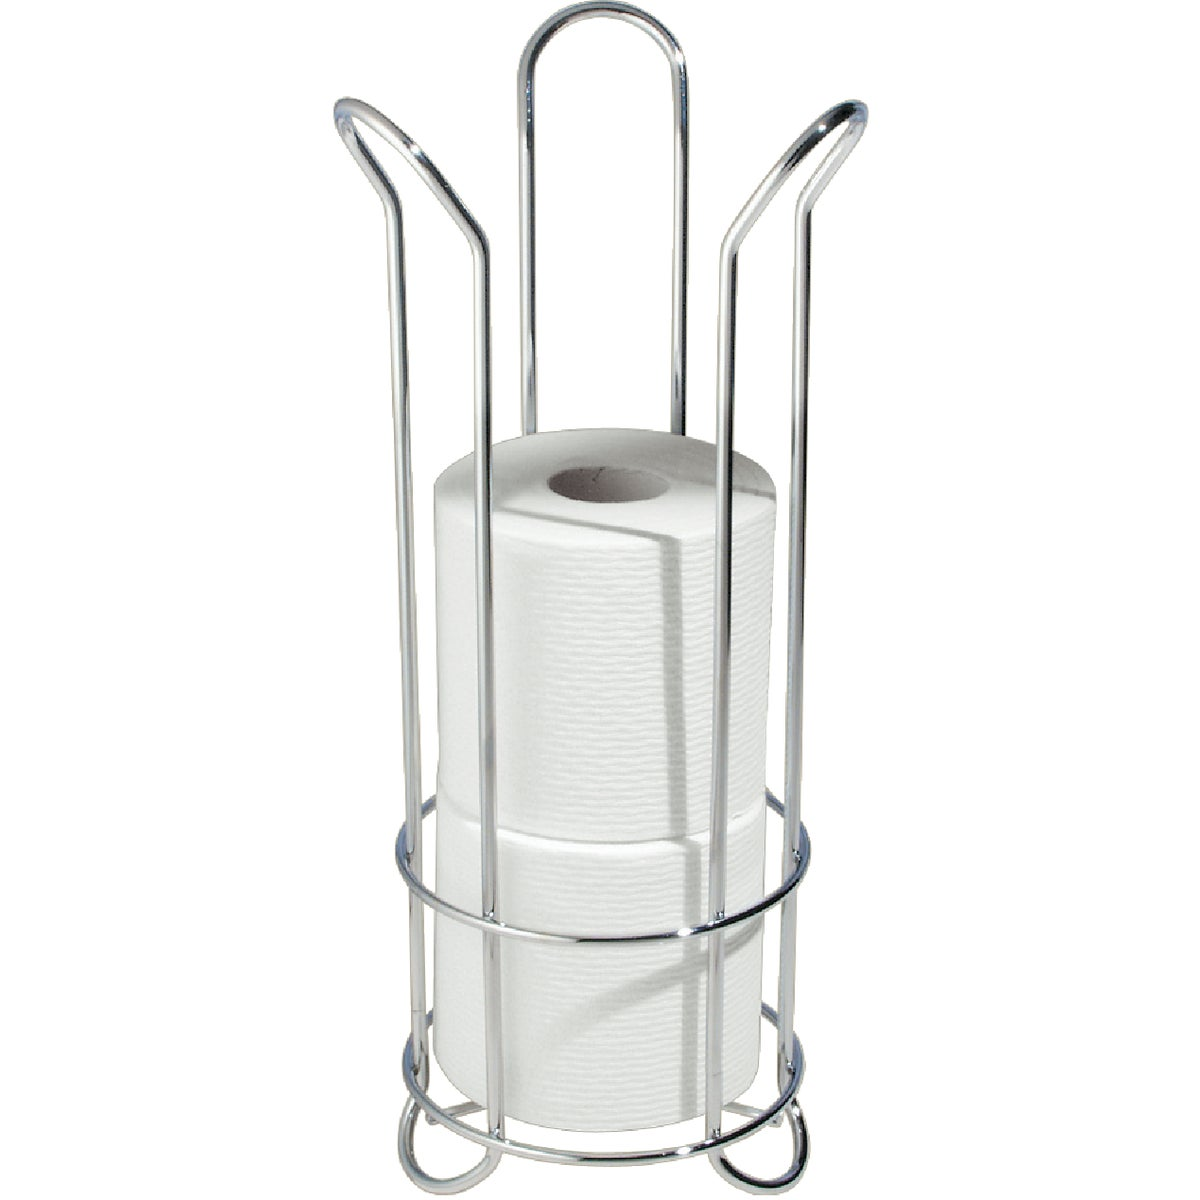 TOILET PAPER HOLDER - 68620 by Interdesign Inc